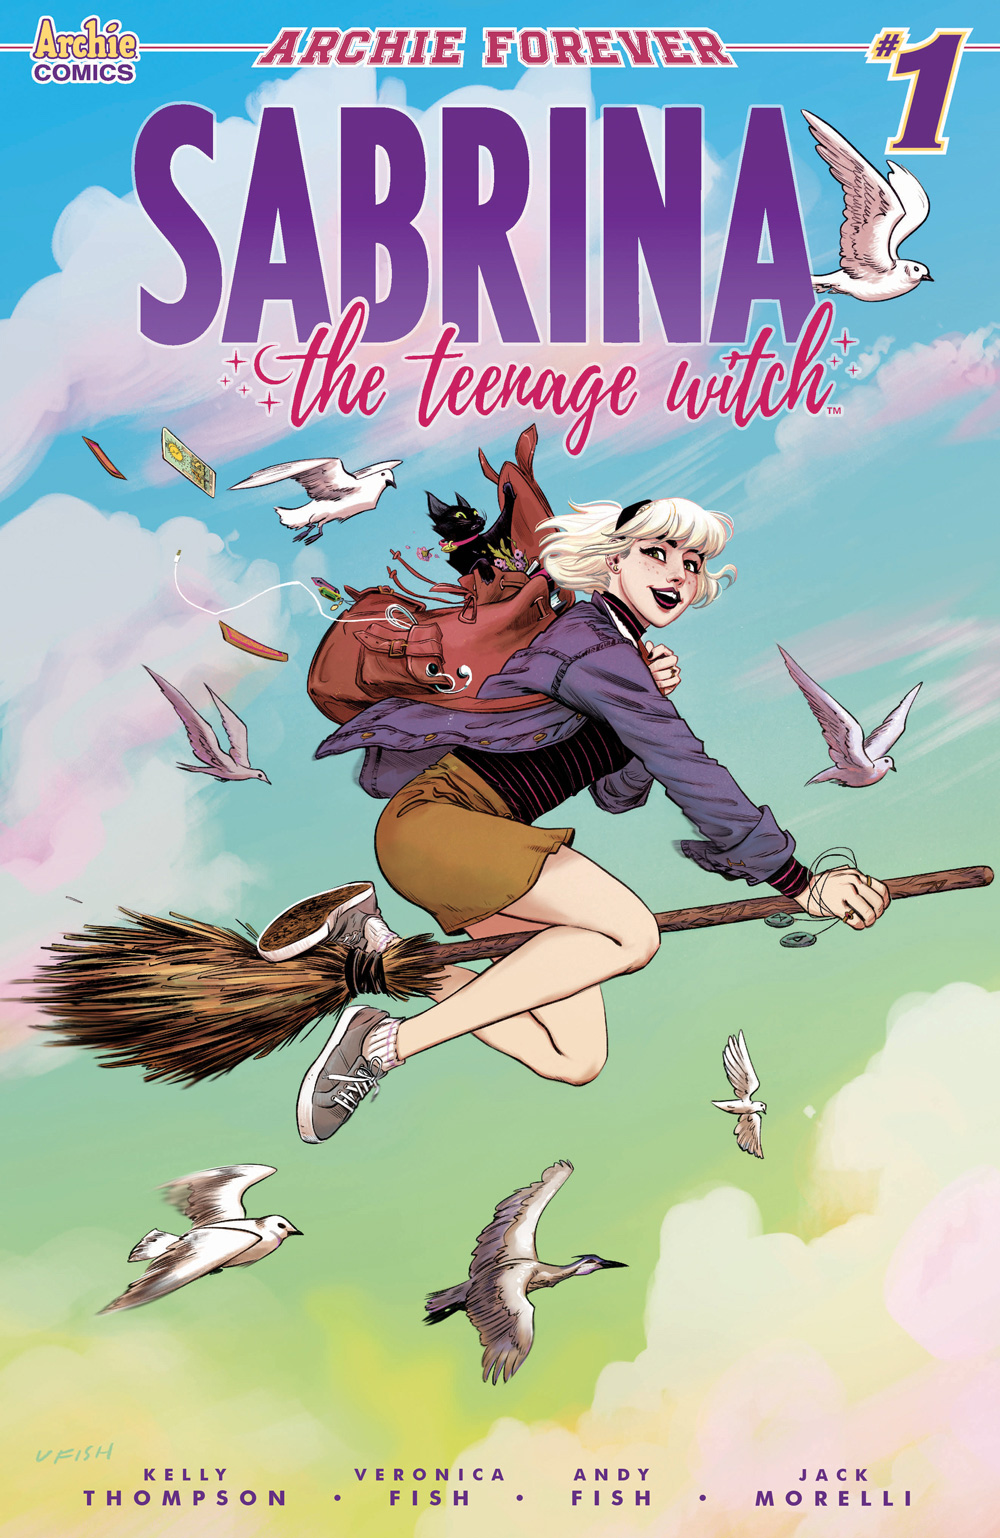 PRE-ORDER: 'Sabrina the Teenage Witch' #1 (of 5) by Kelly Thompson,  Veronica Fish, and Andy Fish